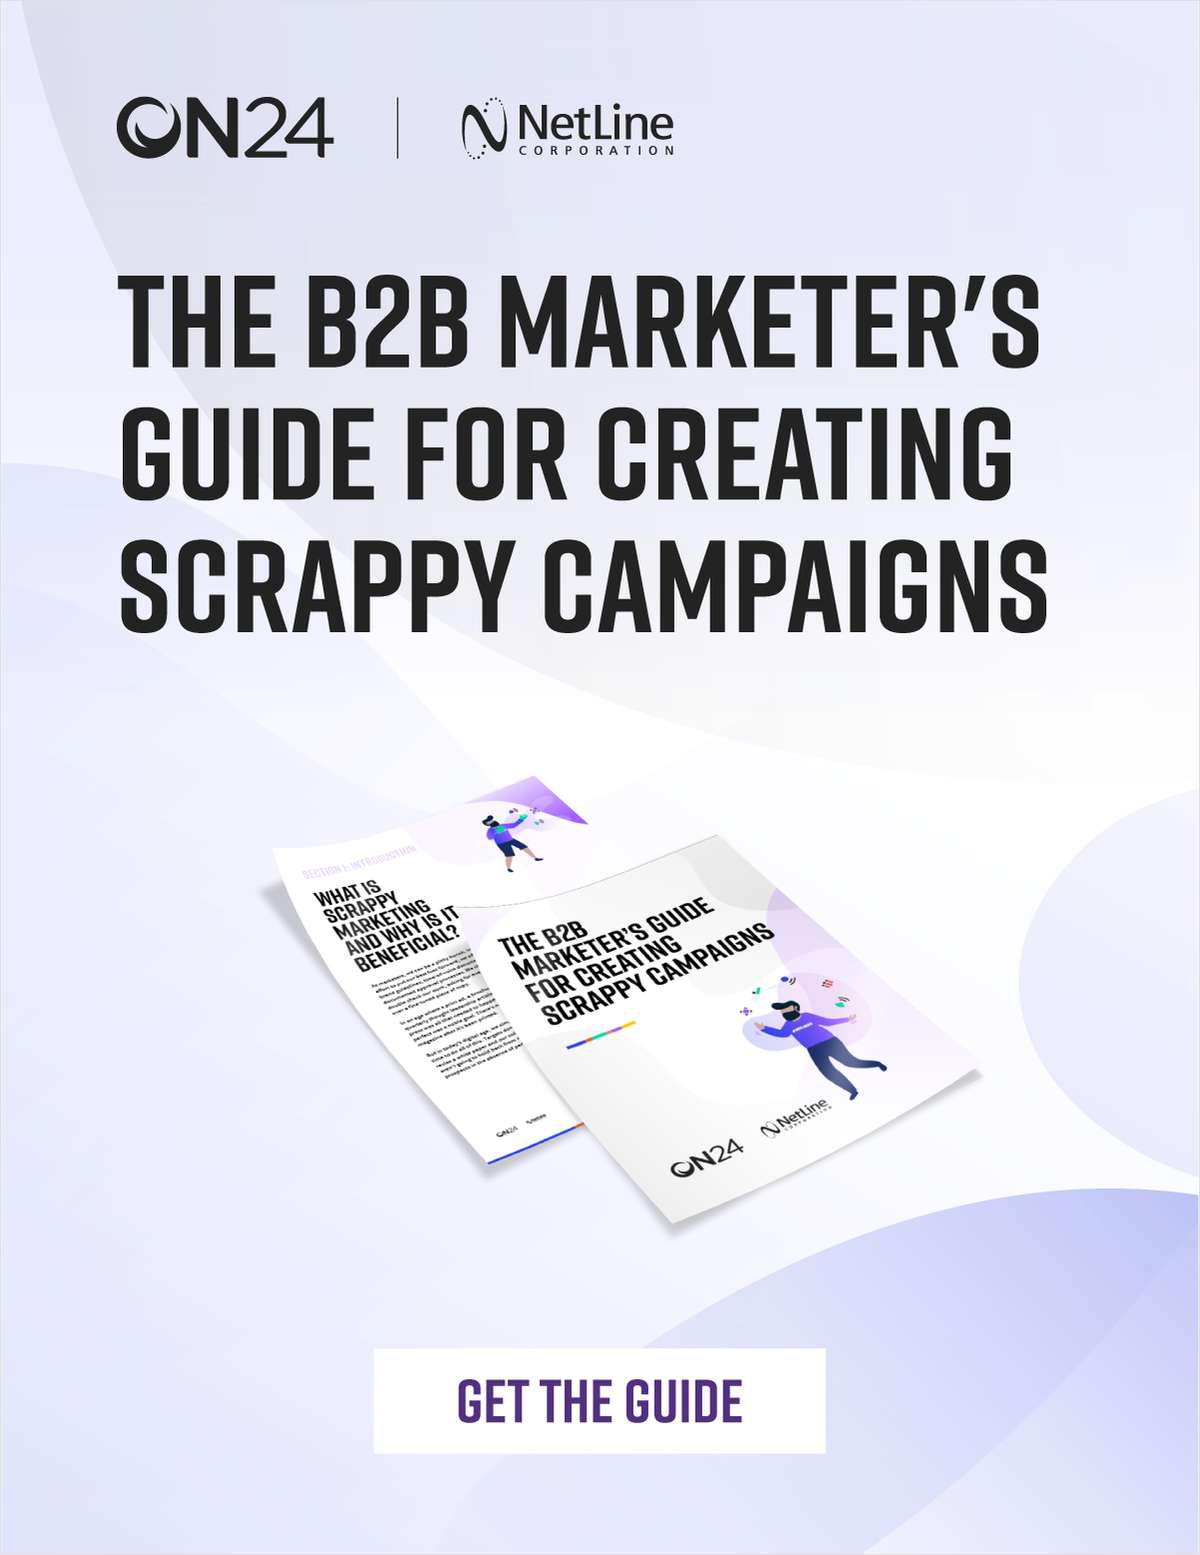 The B2B Marketer's Guide for Creating Scrappy Campaigns